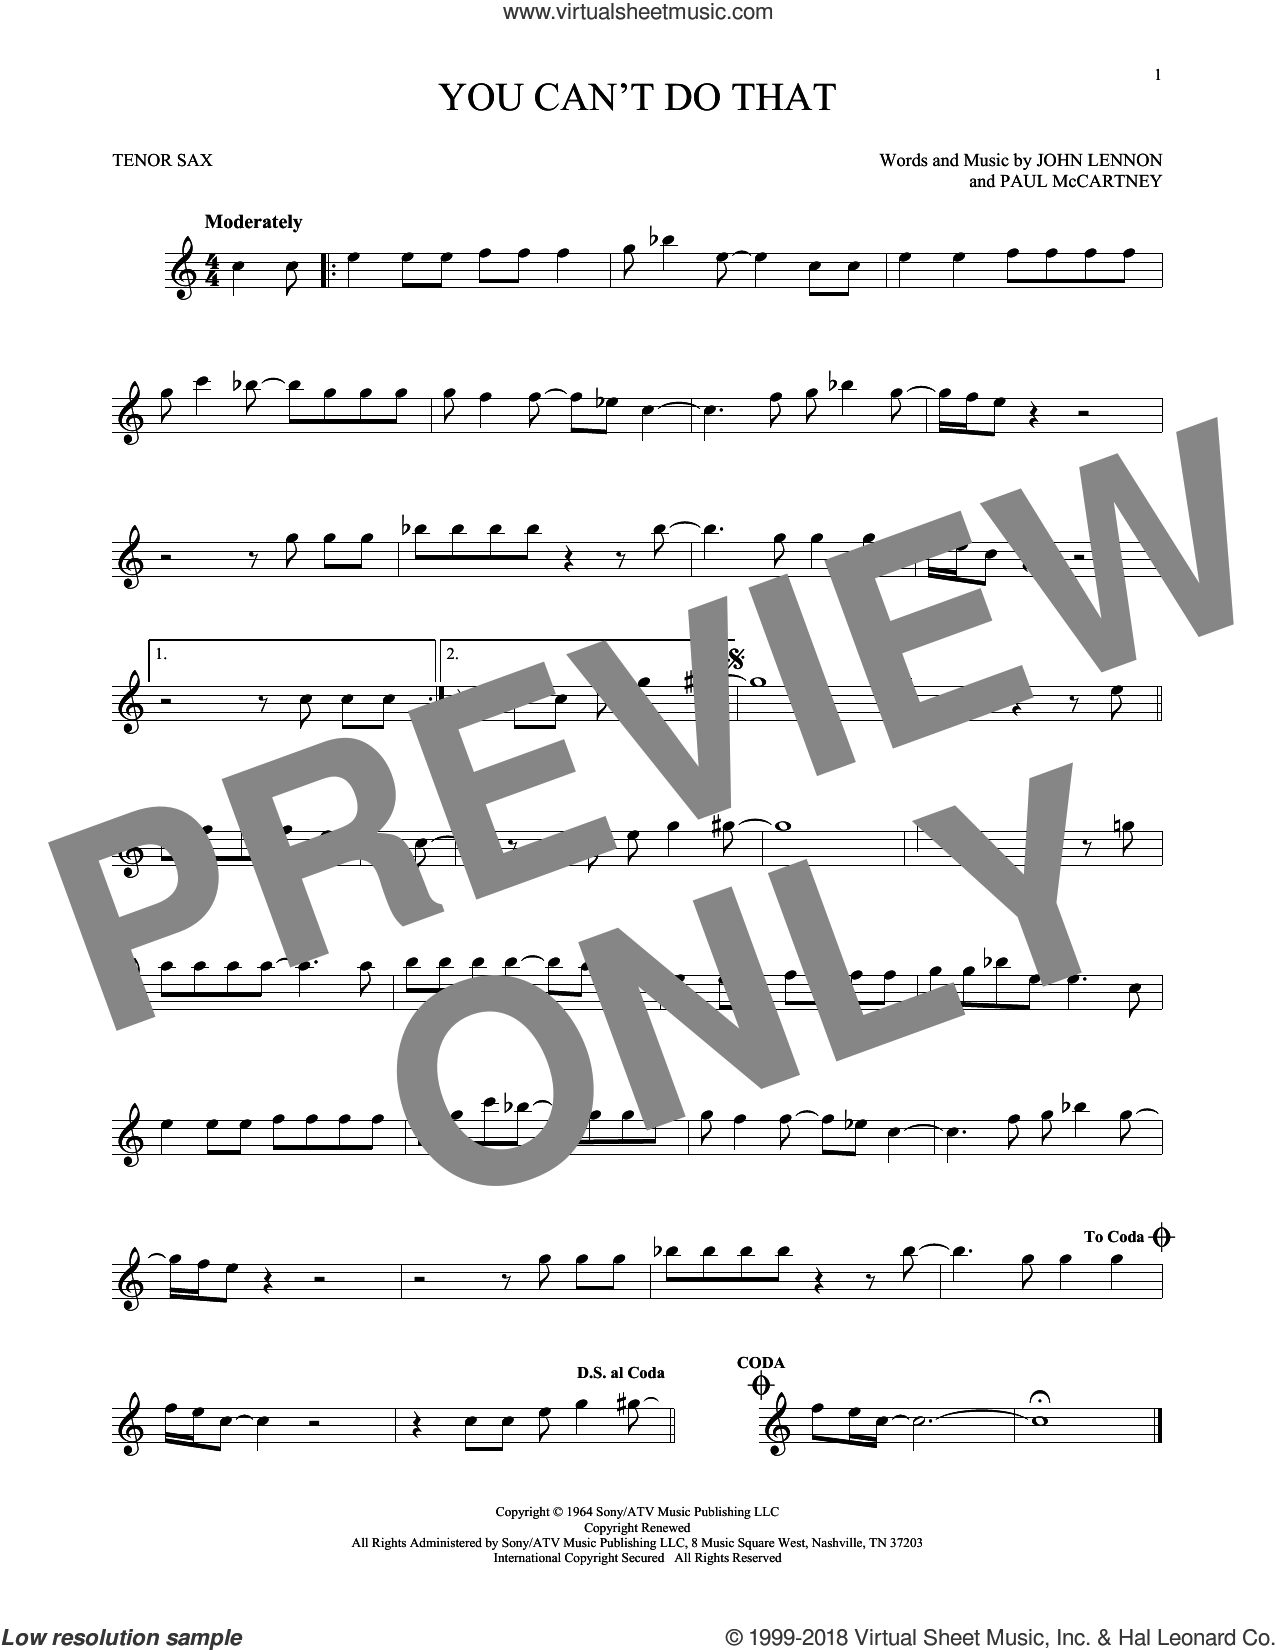 You Can't Do That sheet music for tenor saxophone solo by Paul McCartney, The Beatles and John Lennon. Score Image Preview.